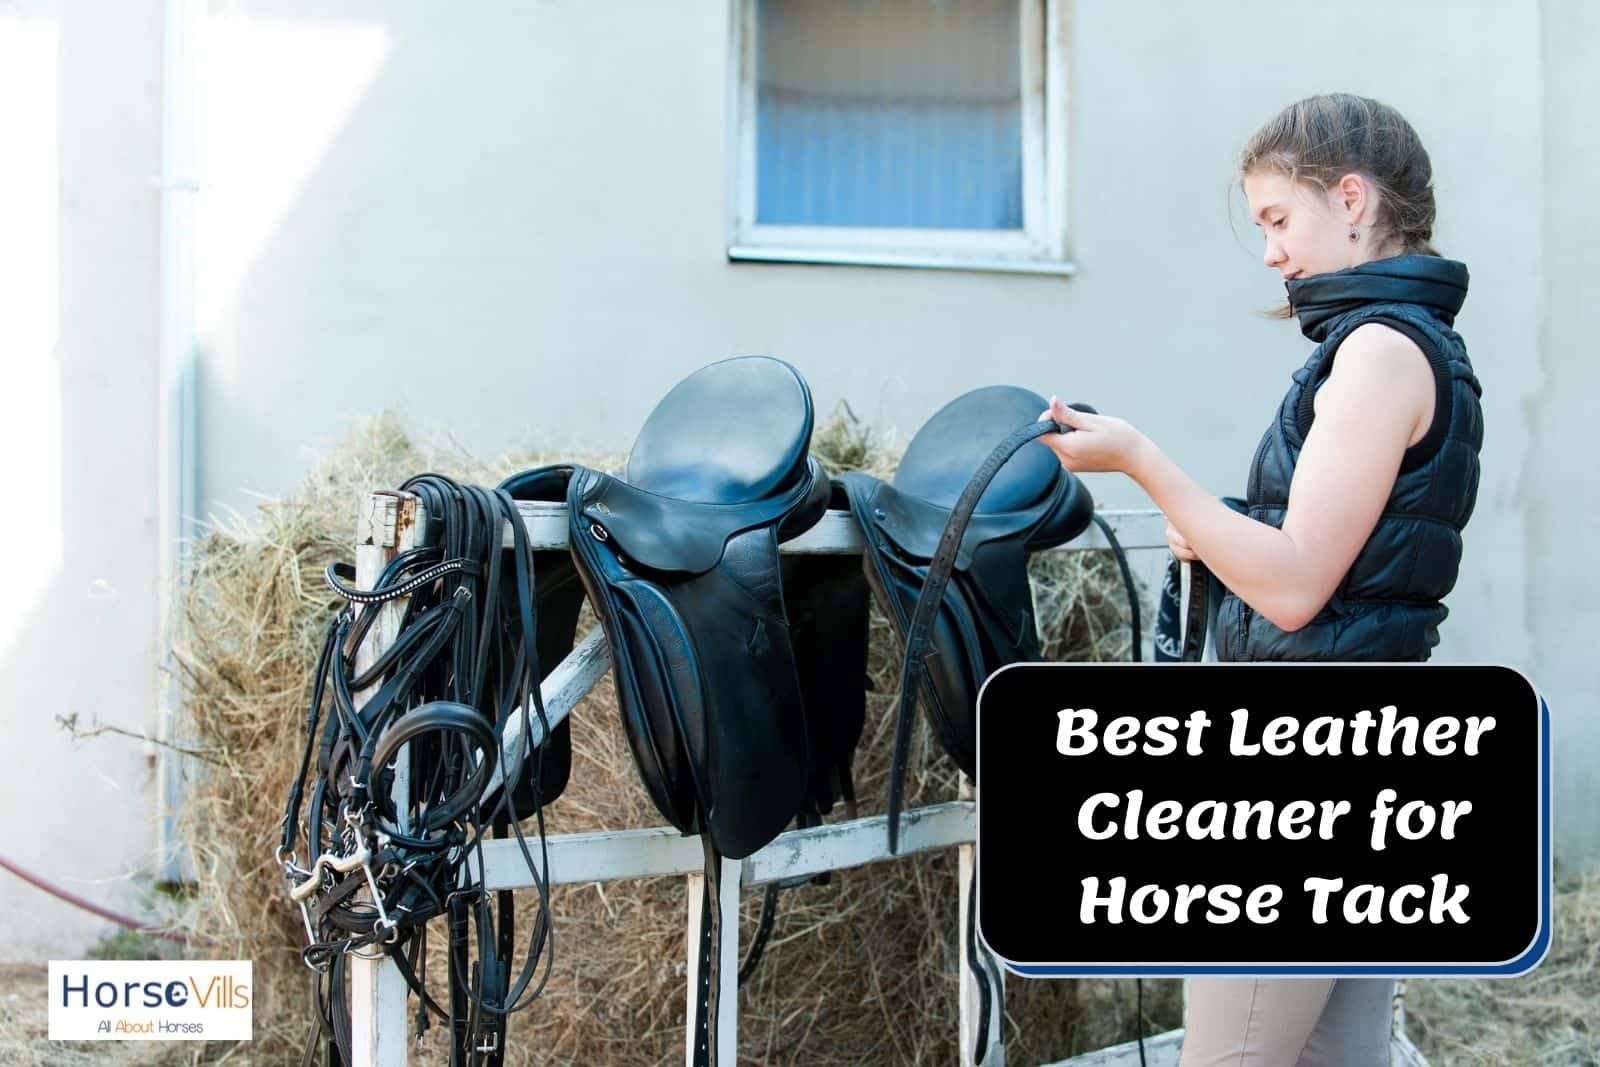 lady cleaning the horse tack using the best leather cleaner for horse tack